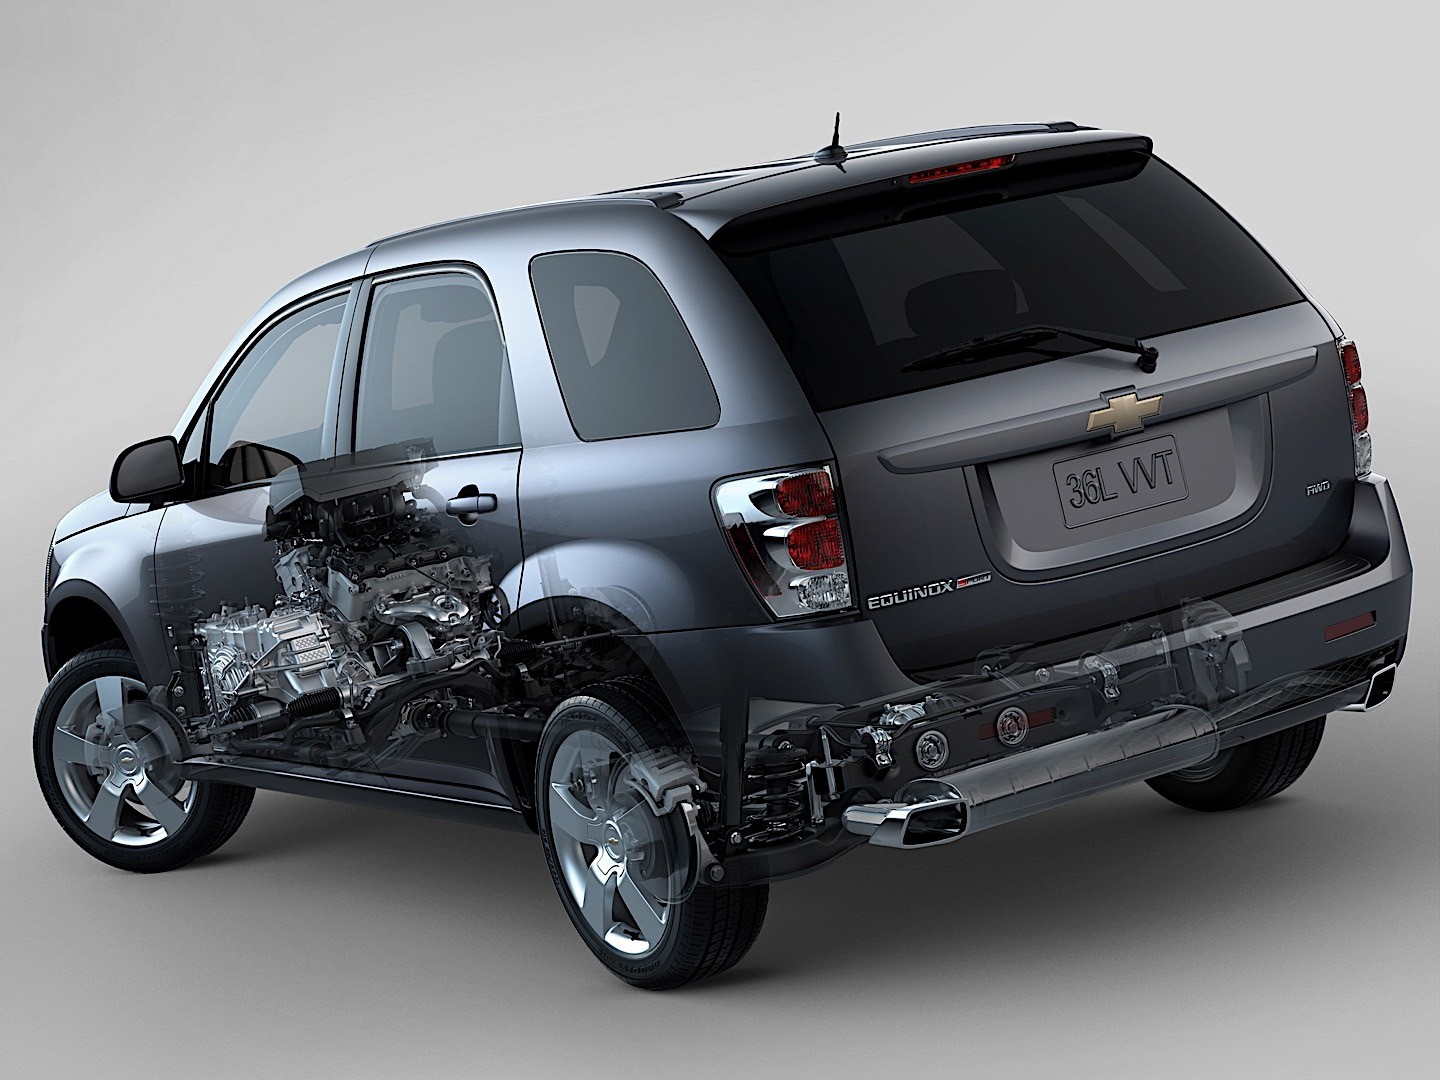 Diagram Chevrolet Captiva 2008